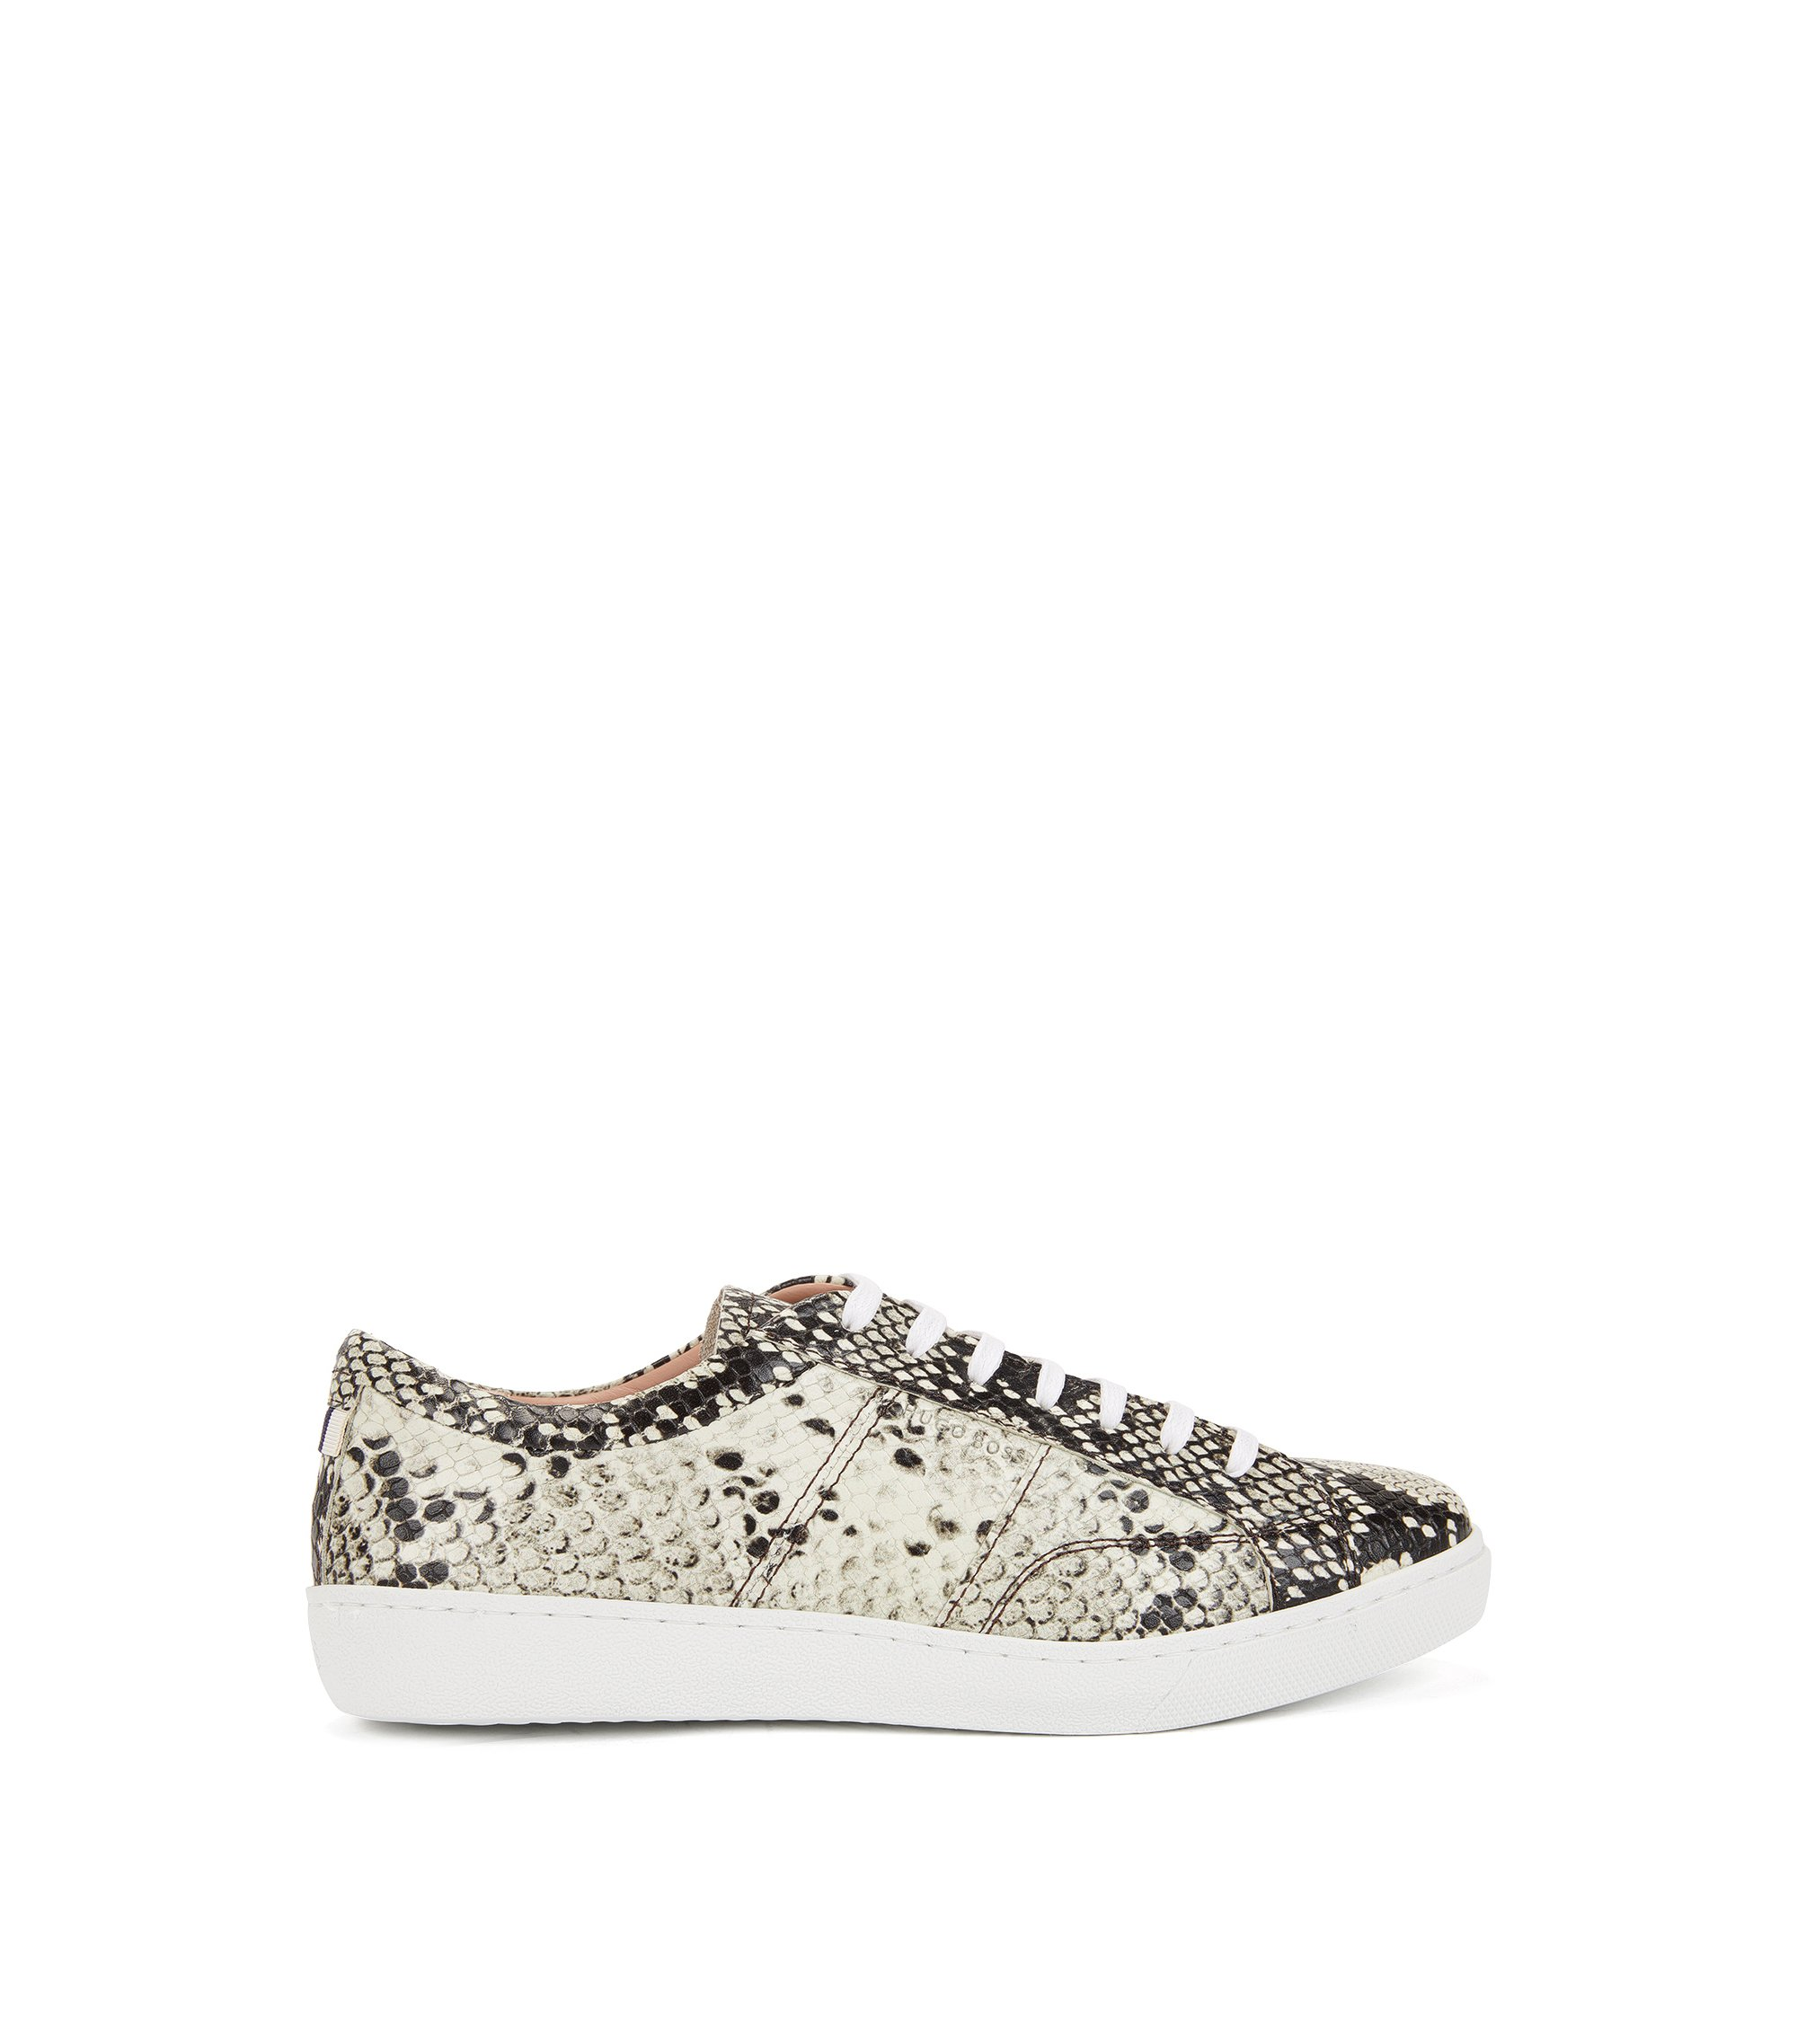 Lace-up trainers in python-print Italian calf leather, Patterned